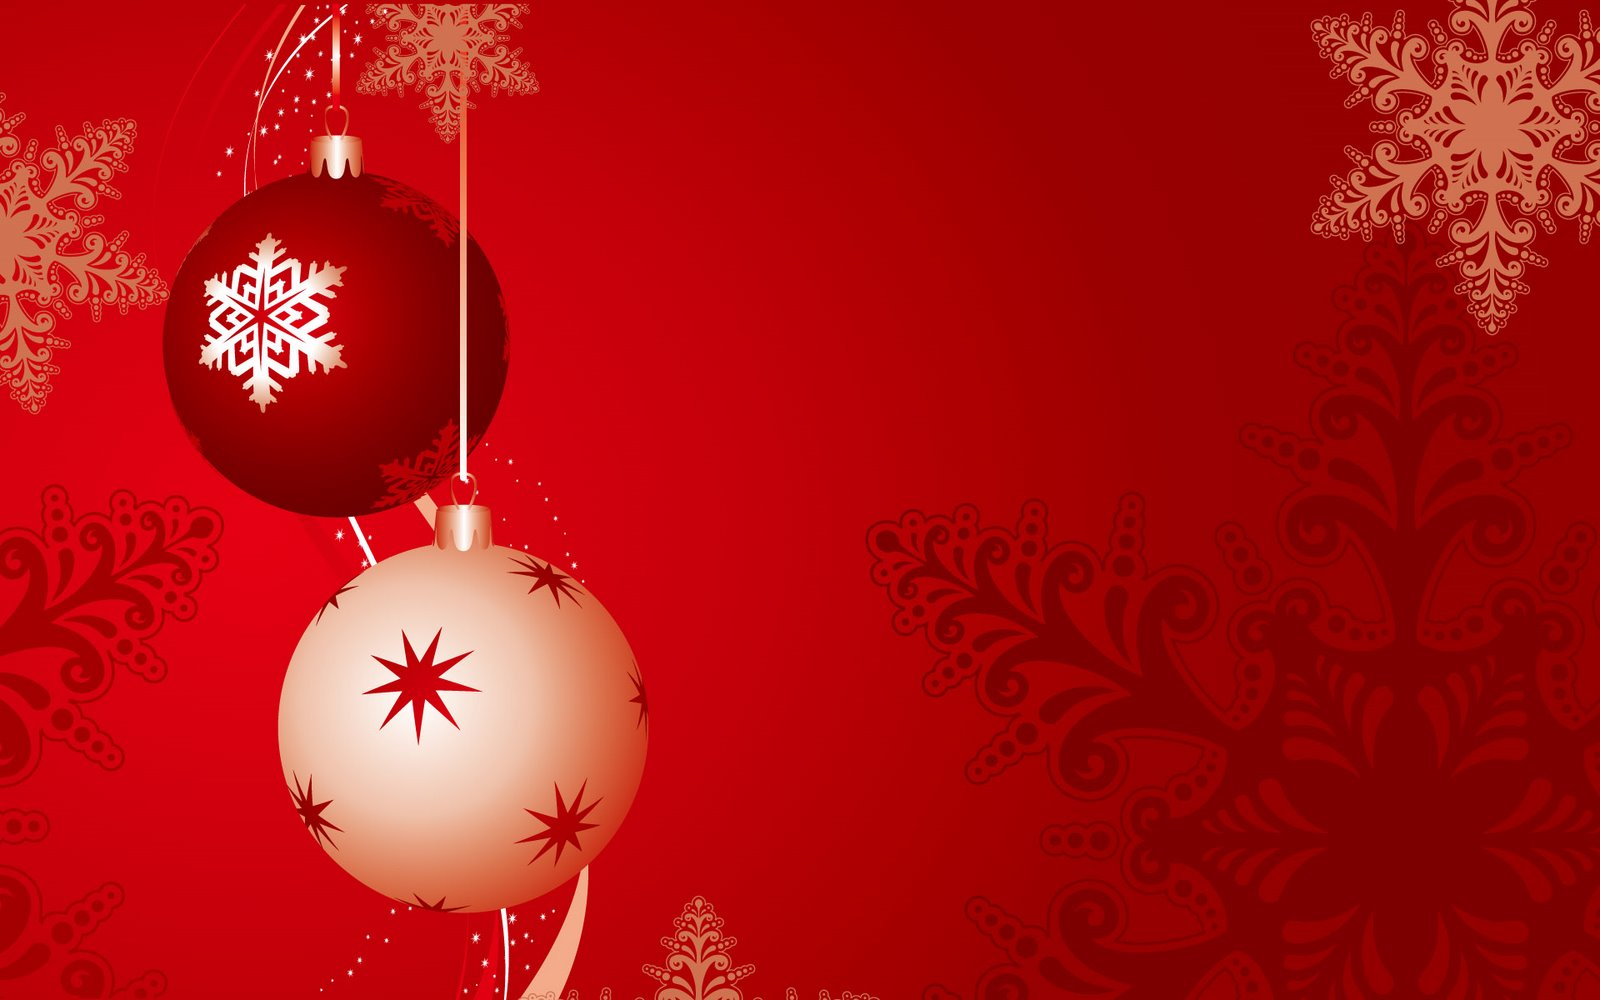 wallpapers christmas imagenes navidenos -#main